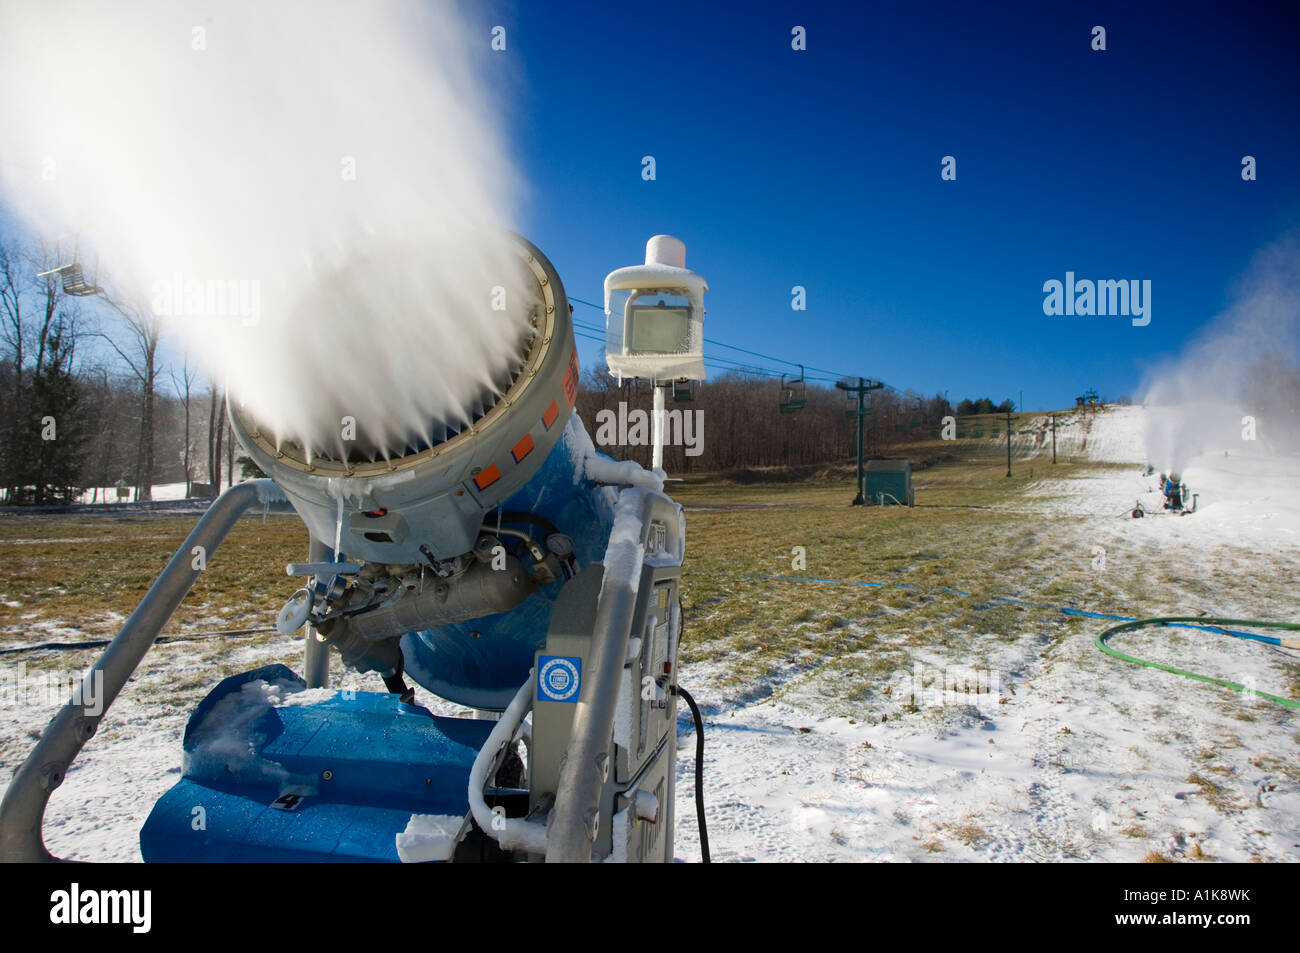 snow blowers making snow at a ski resort stock photo: 10279662 - alamy